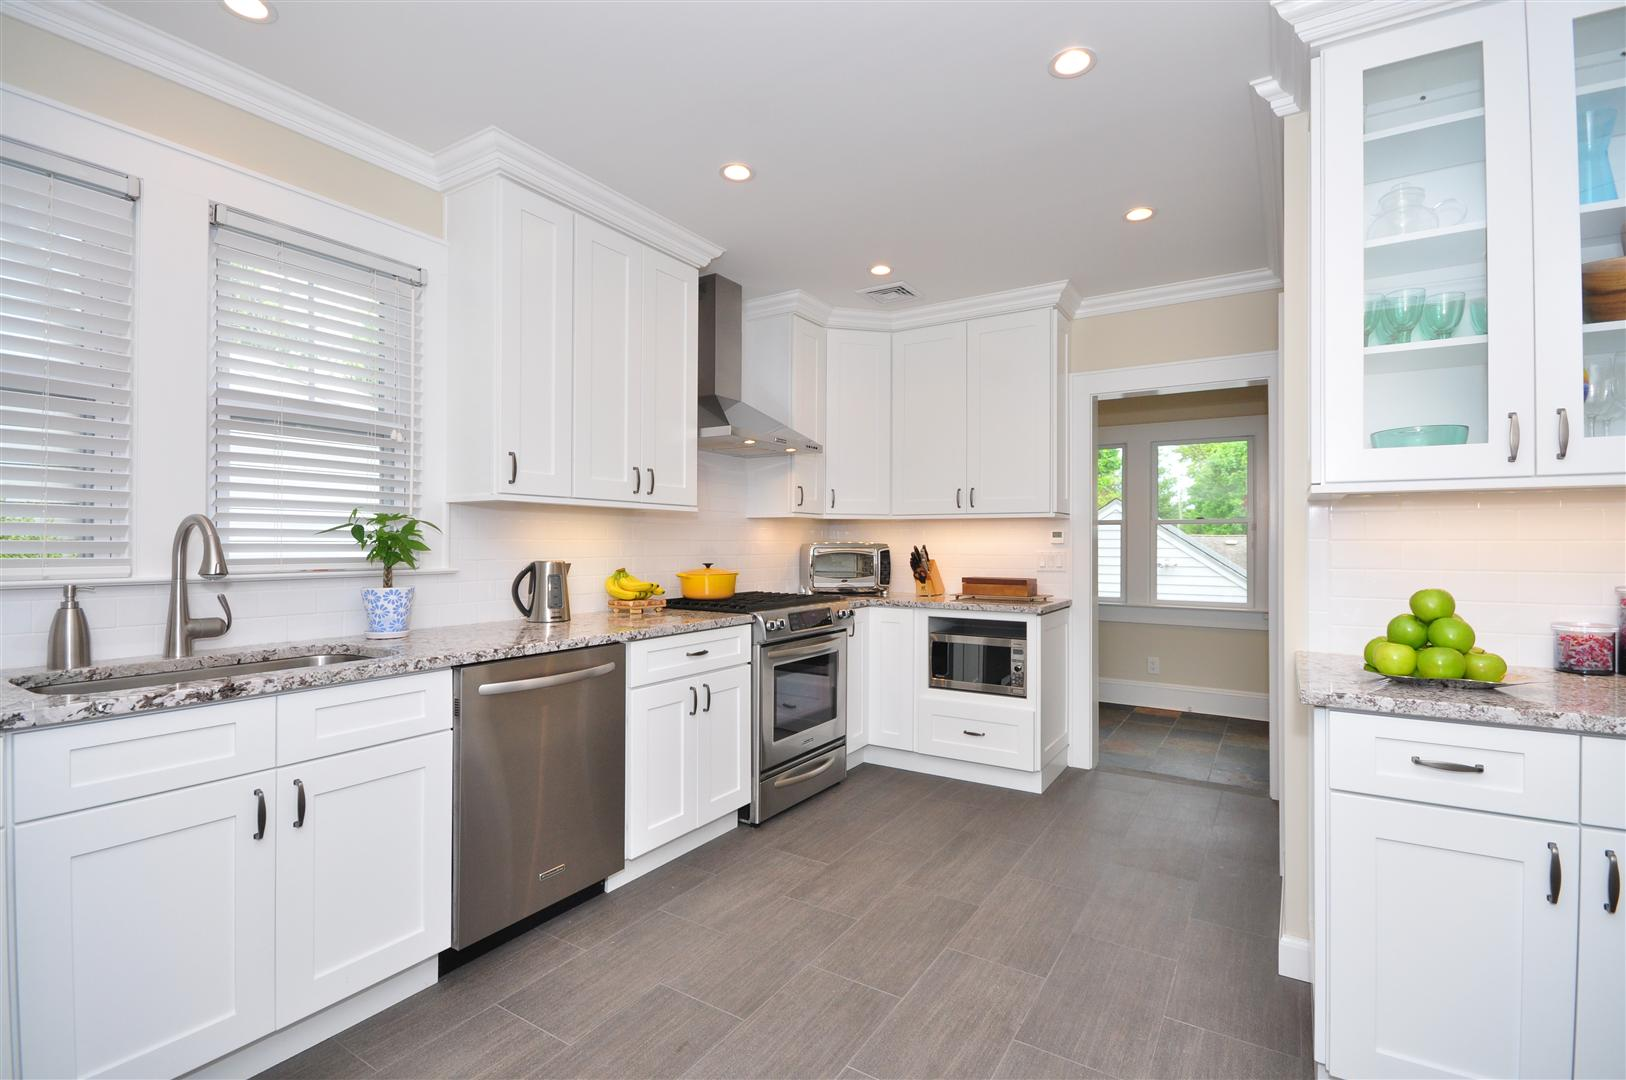 White kitchen cabinets be equipped shaker style cabinets be equipped shaker kitchen cabinets